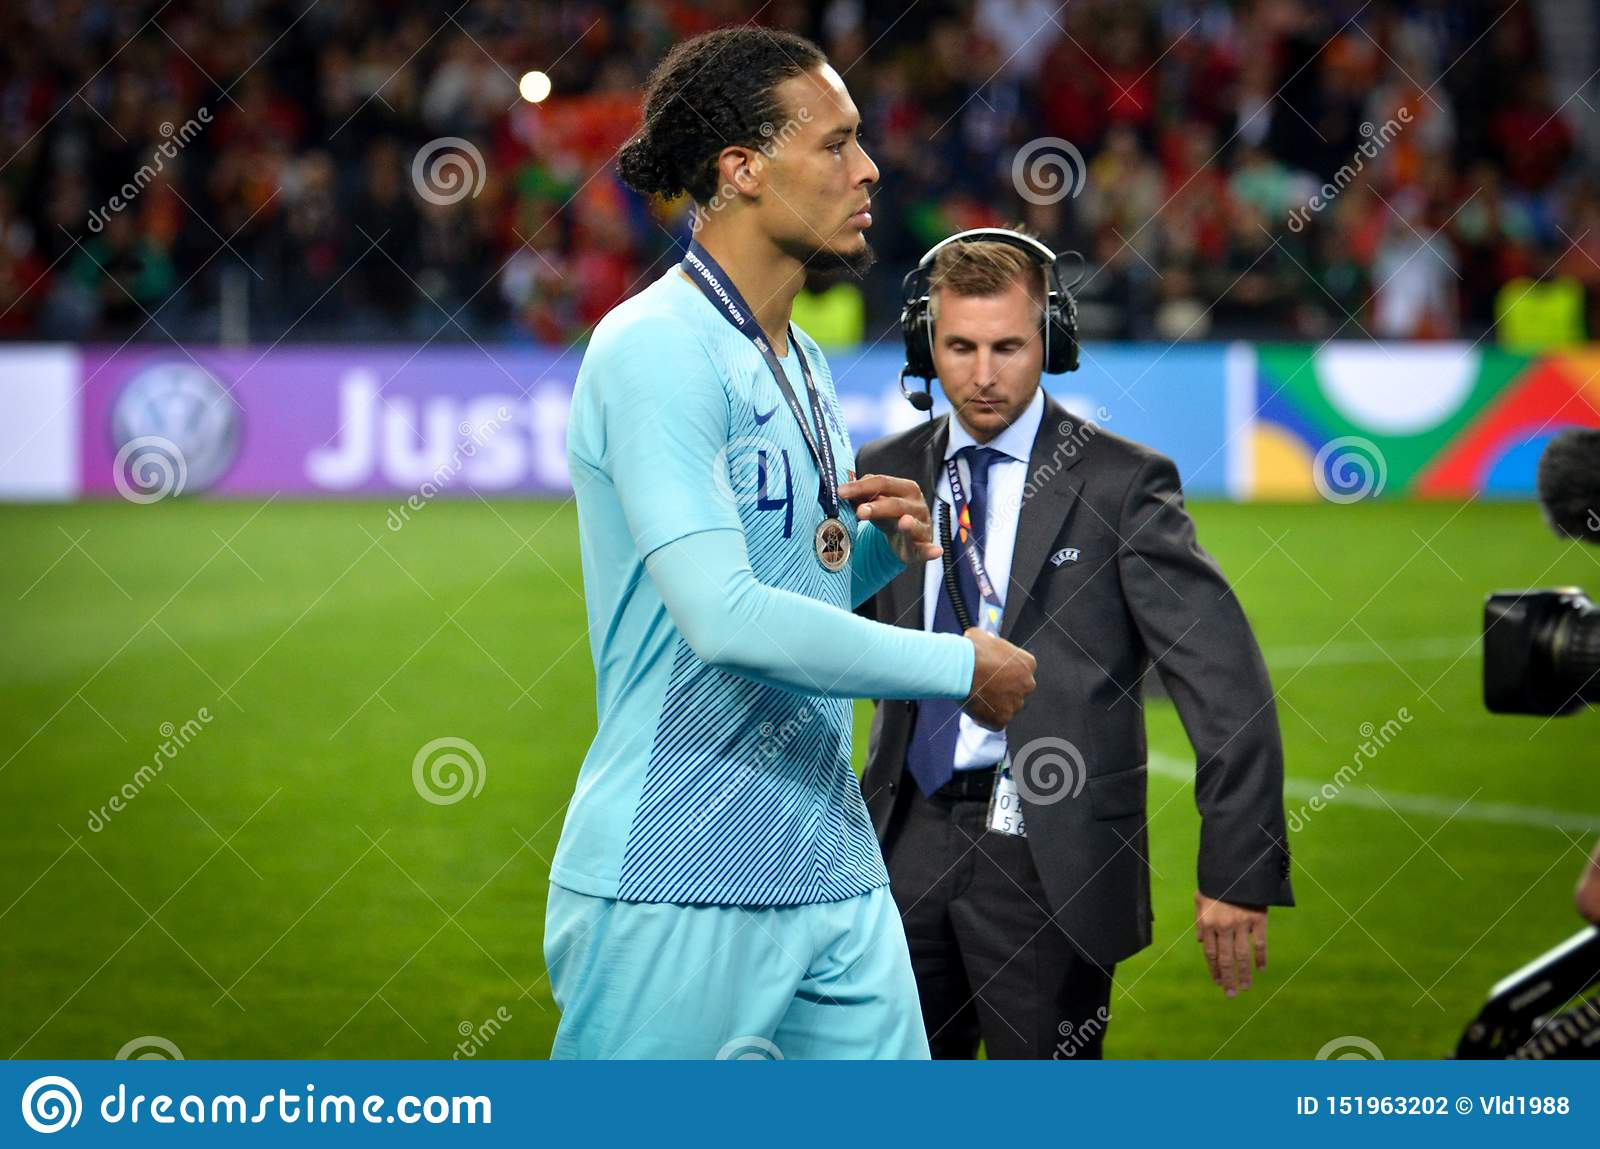 Porto Portuglal June 09 2019 Virgil Van Dijk Receive Silver Medals During The Uefa Nations League Finals Match Between Editorial Photography Image Of Game Fans 151963202